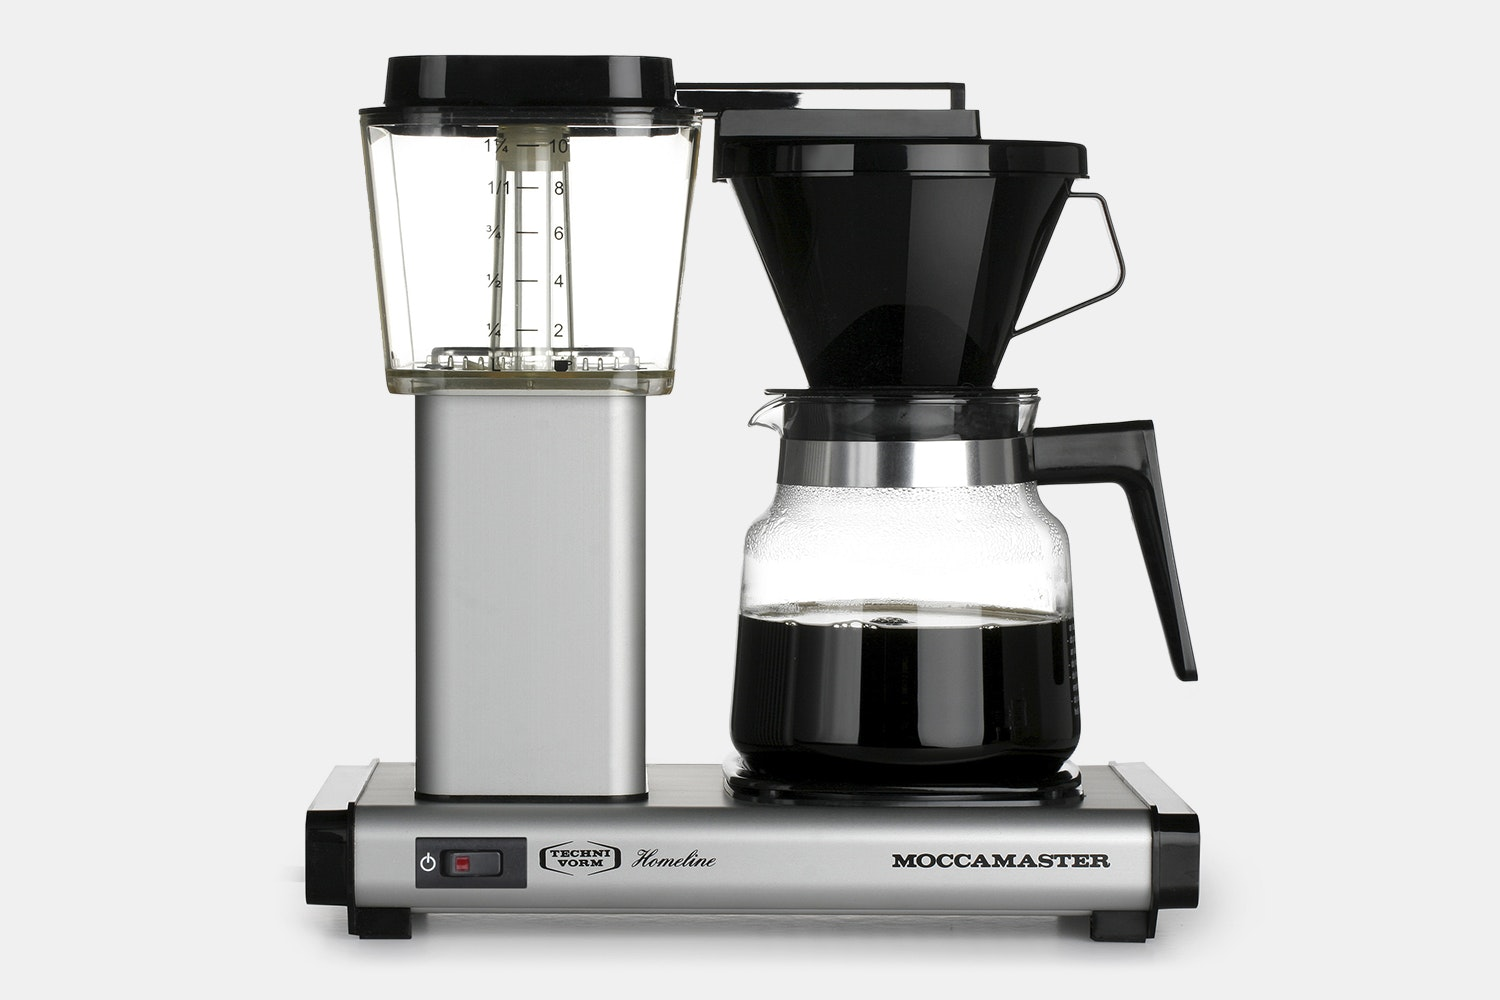 Technivorm Moccamaster K741 Coffee Brewer